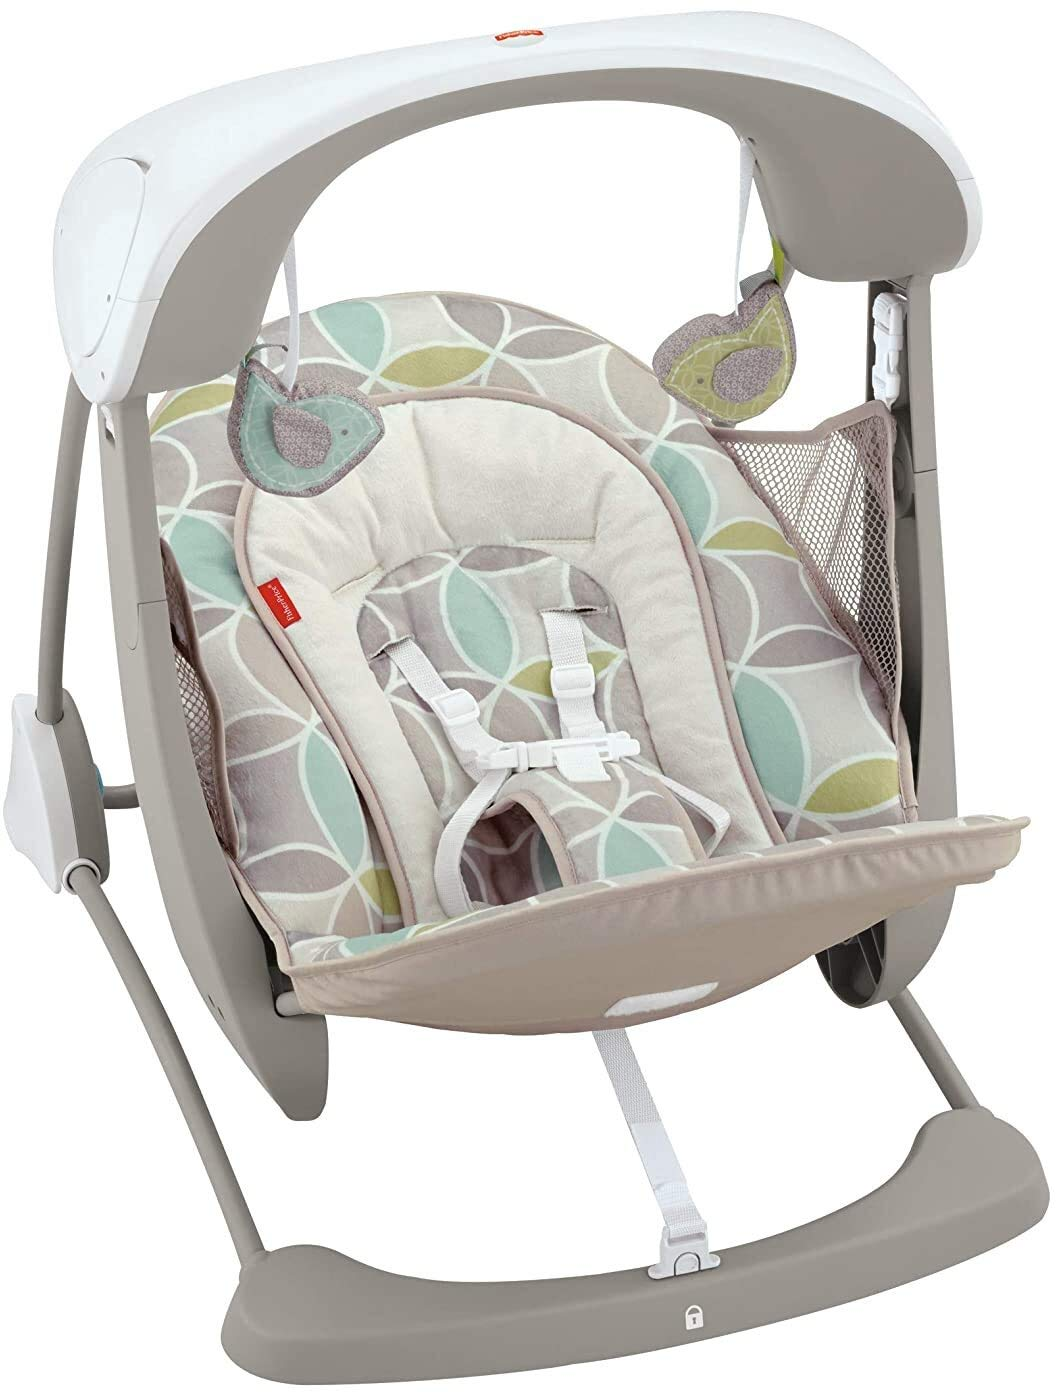 Fisher-Price Deluxe Best Baby Swing & Seat